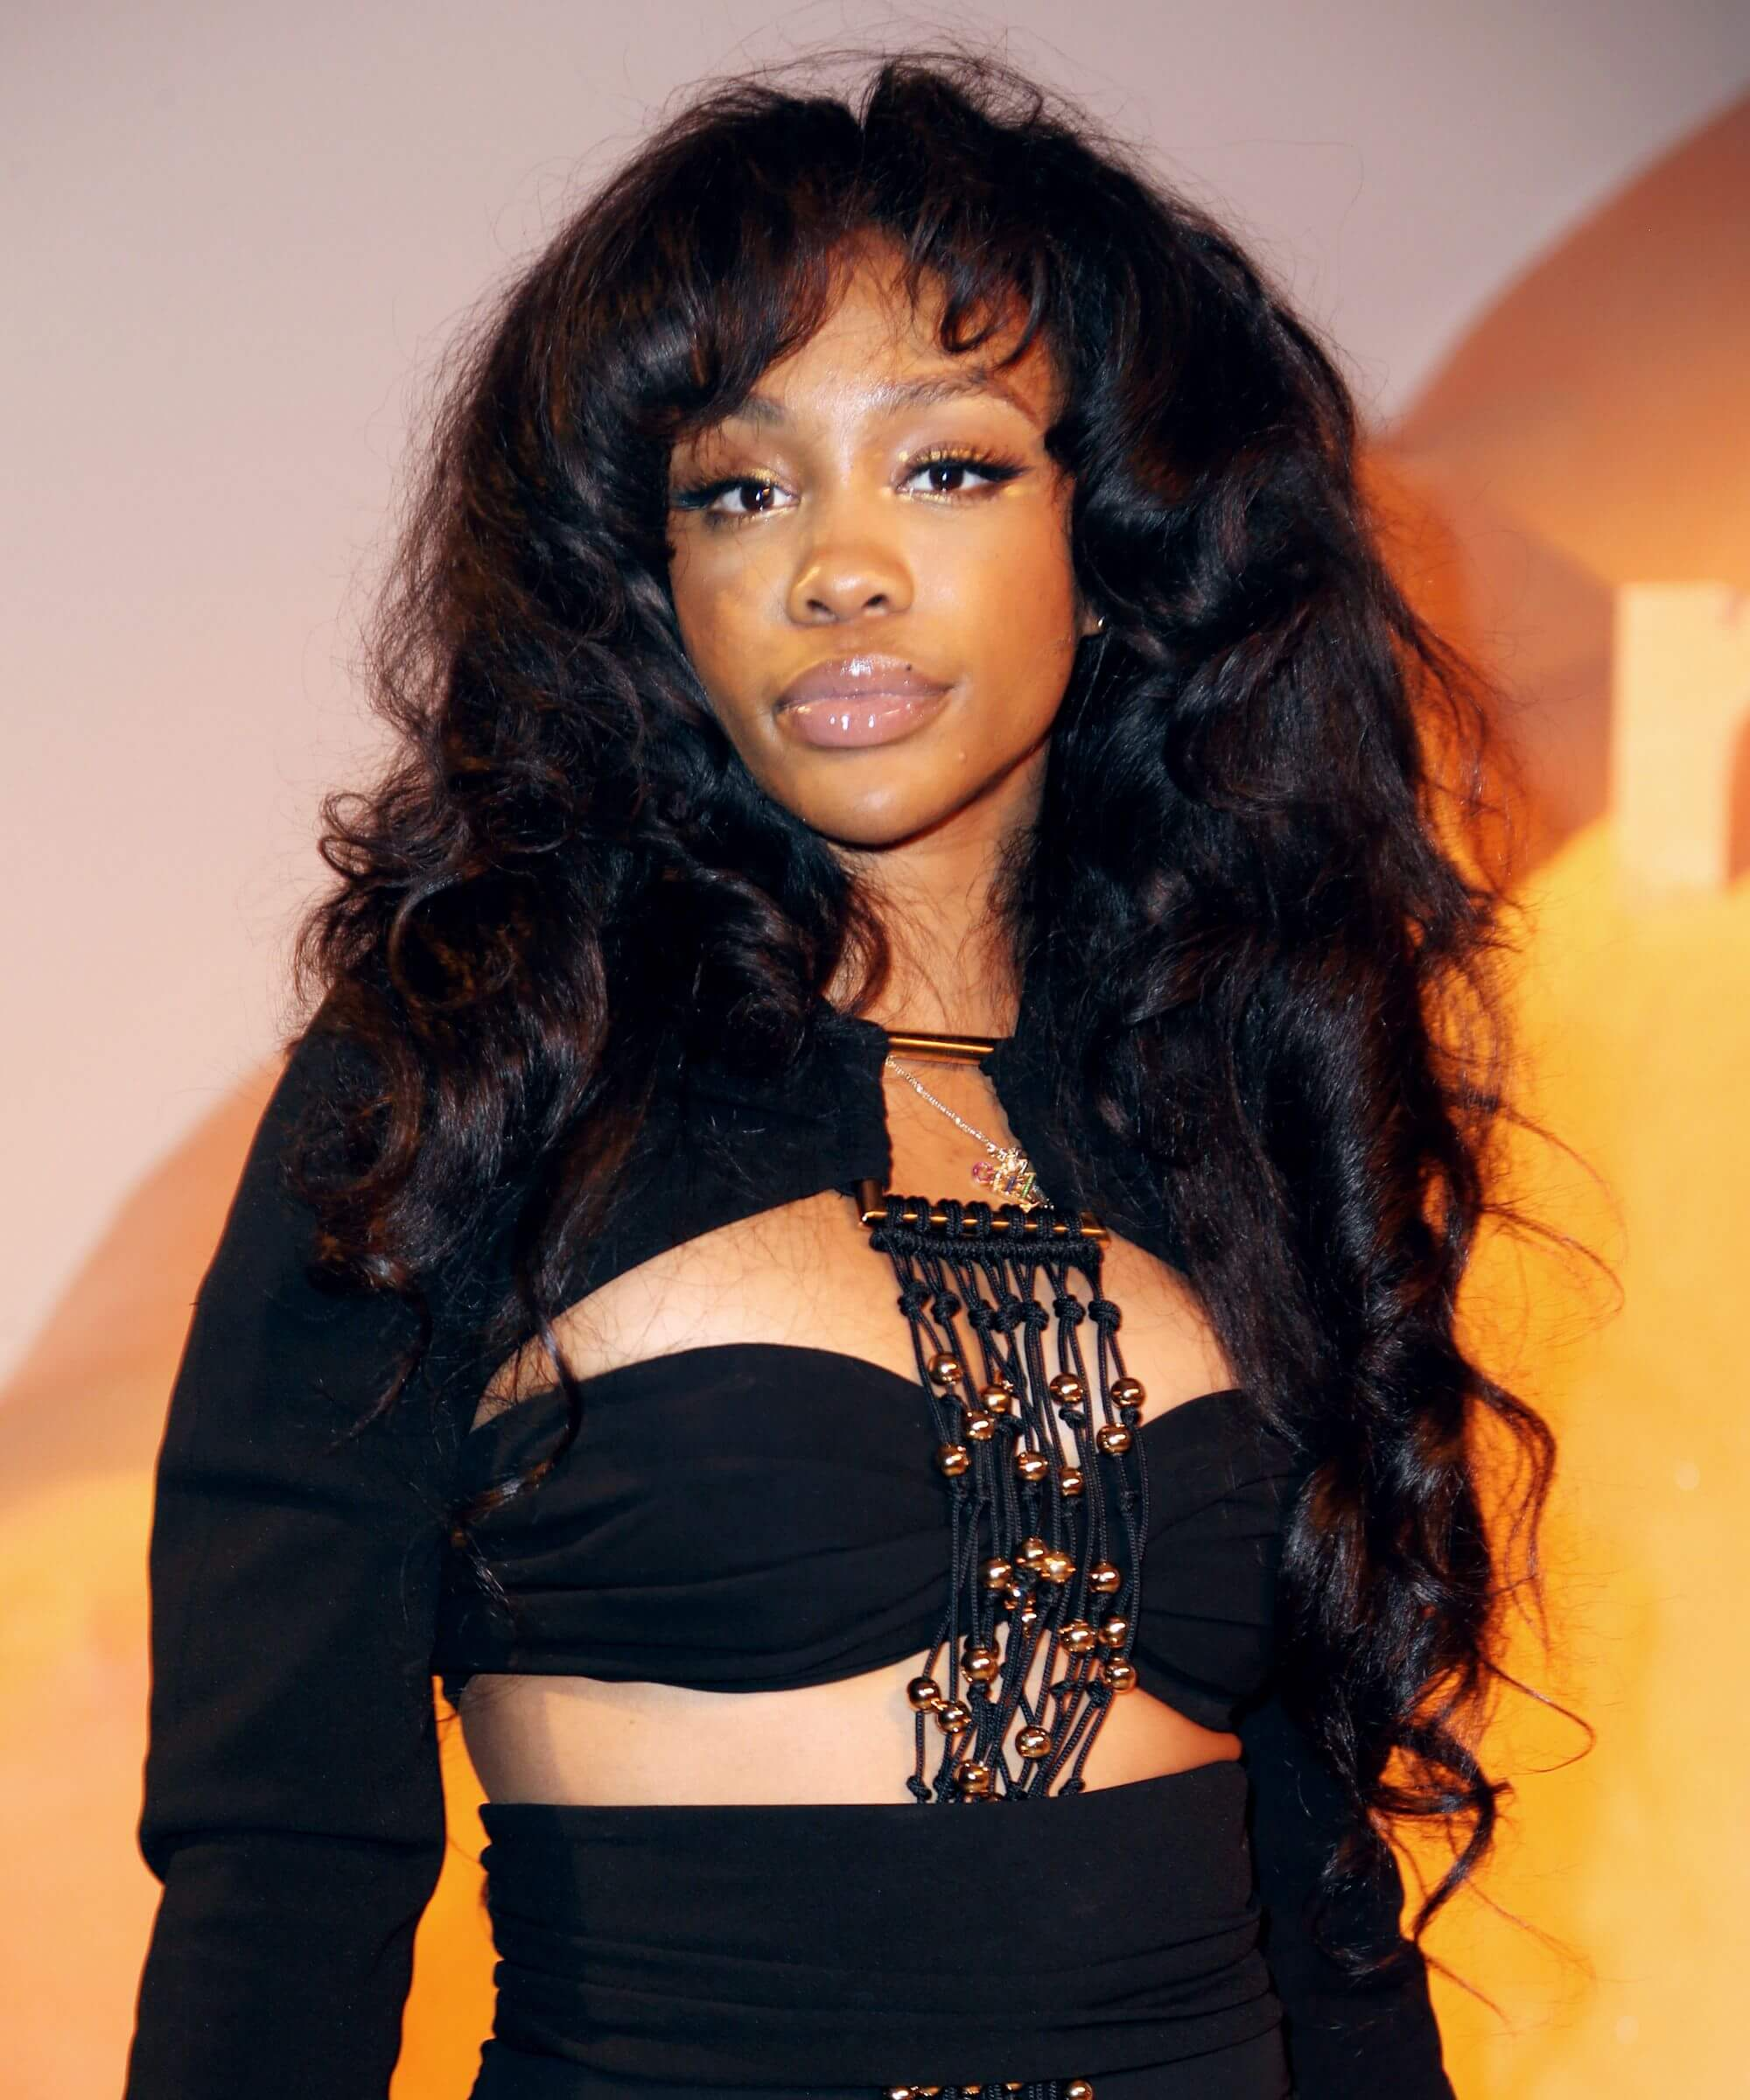 Sza hot picture (3)